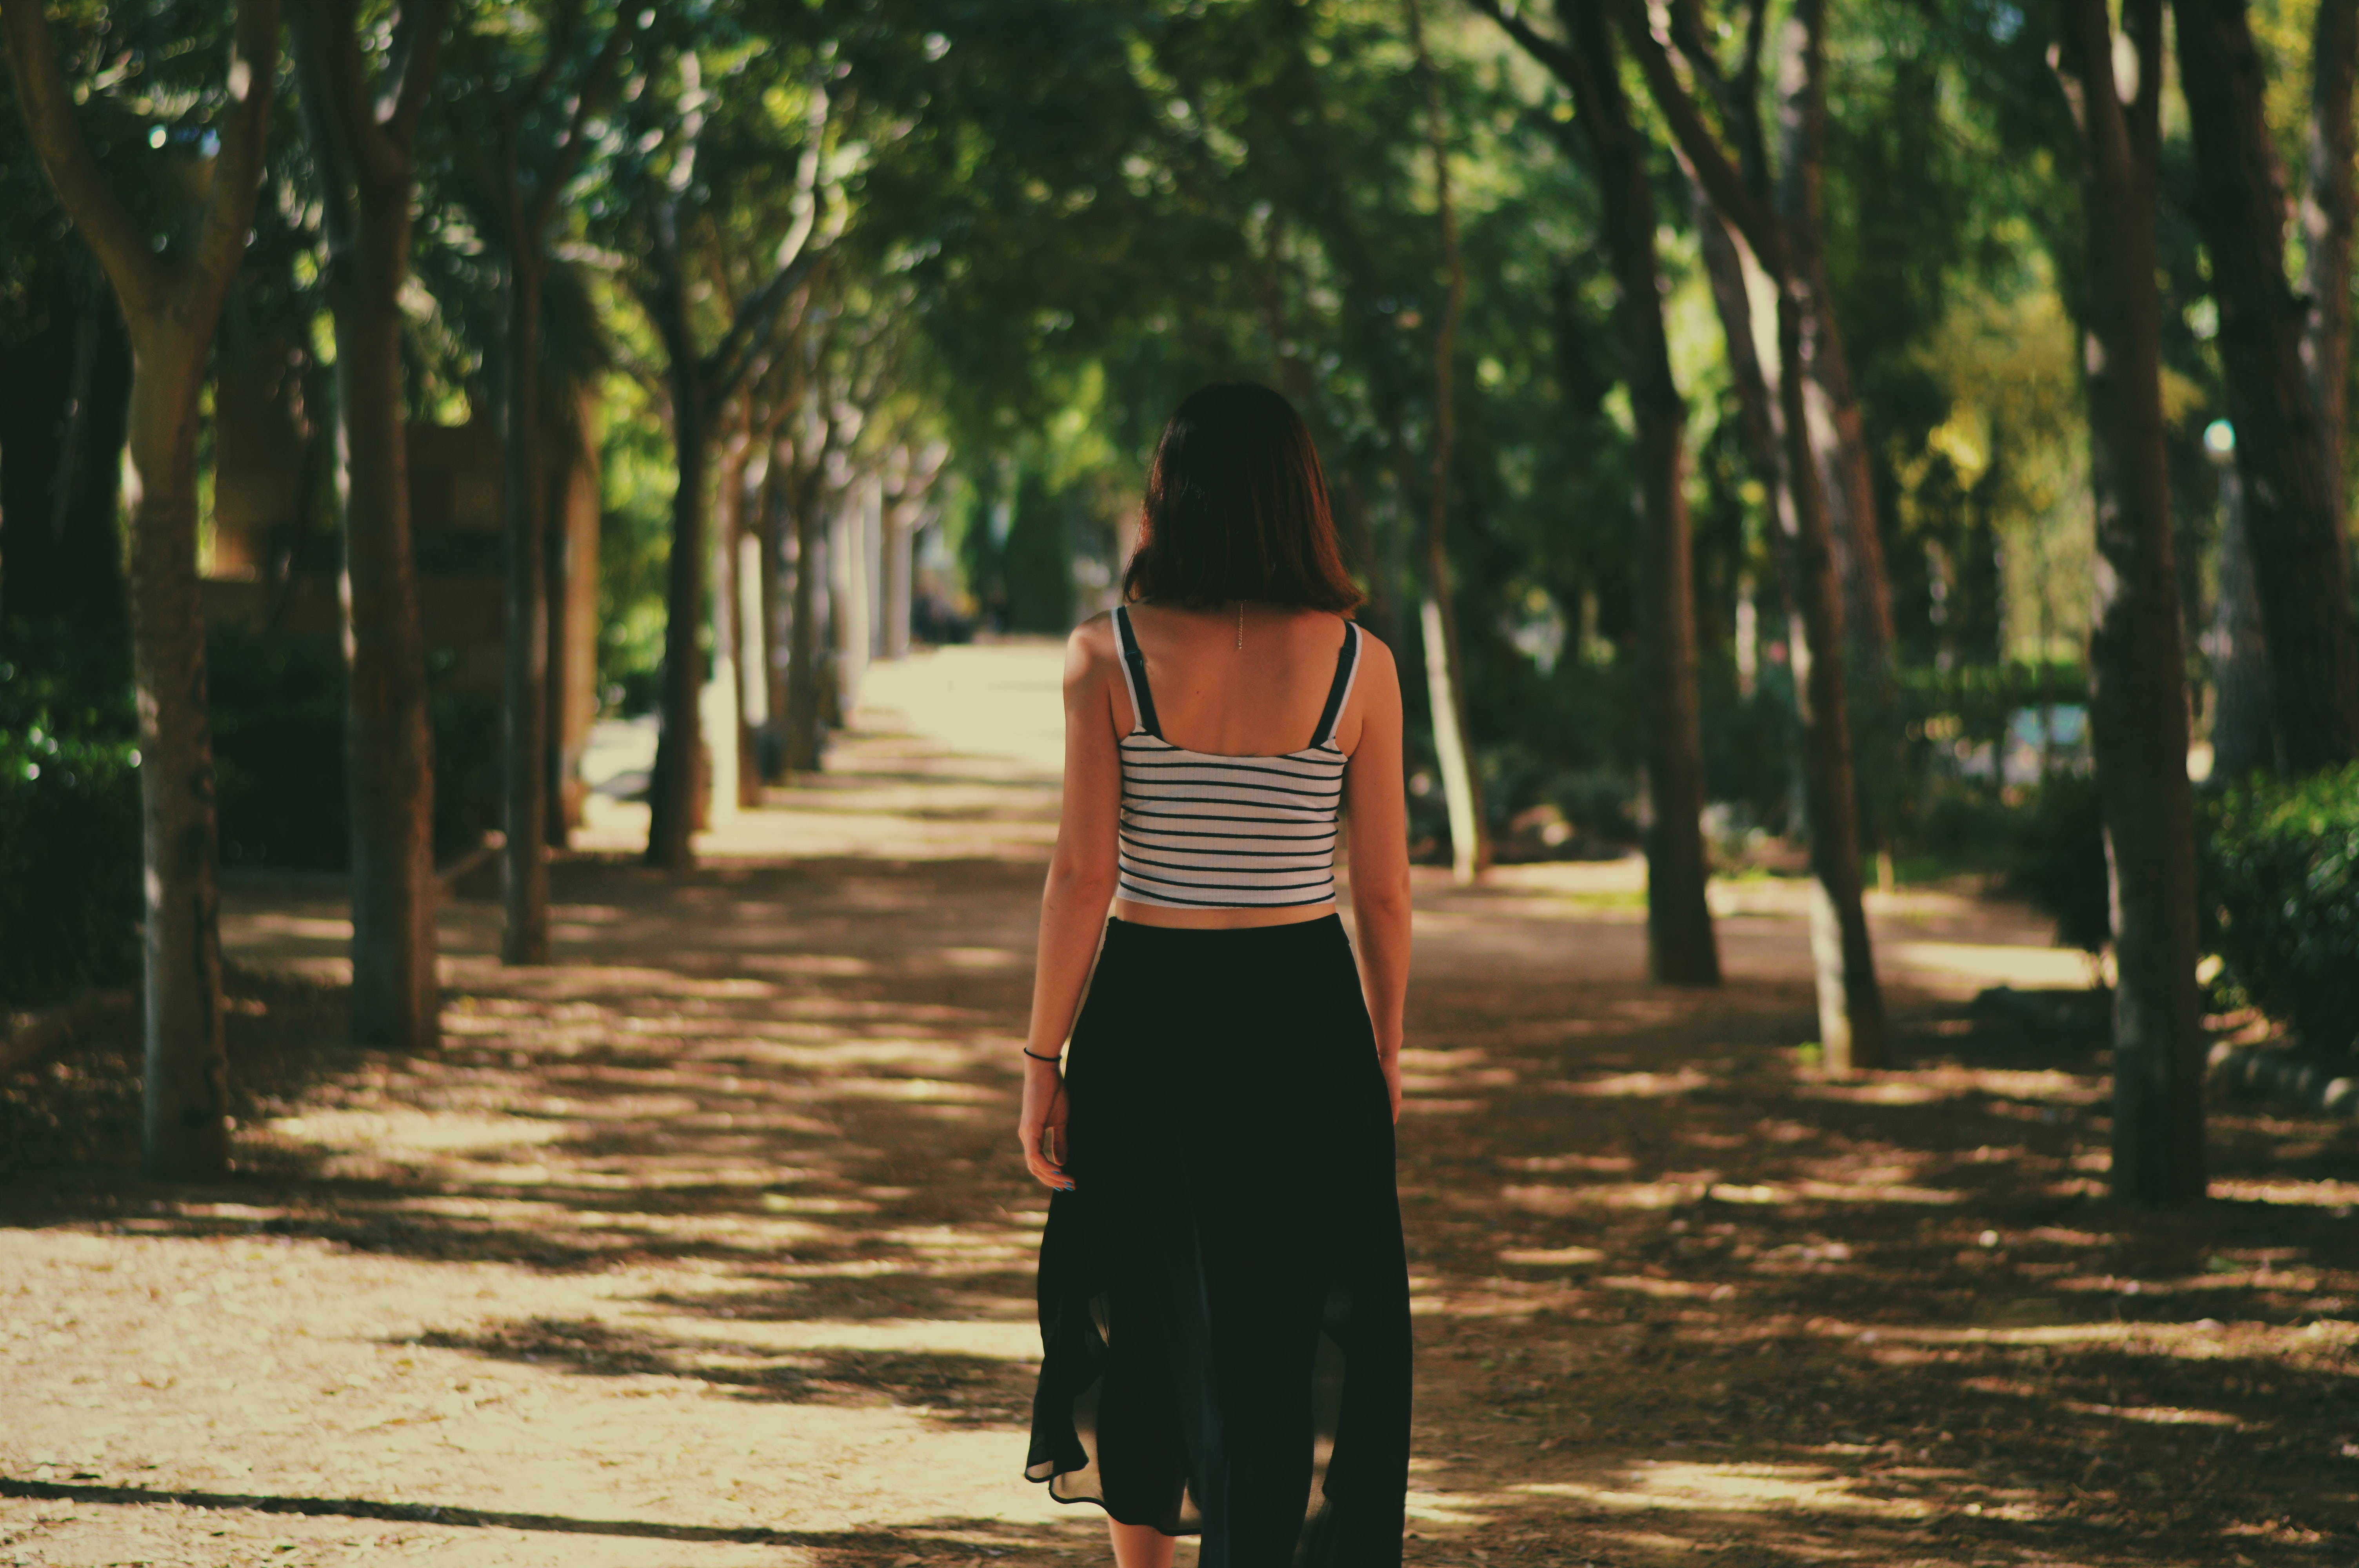 A woman in a striped tank top and black skirt walks away down a tree-lined path